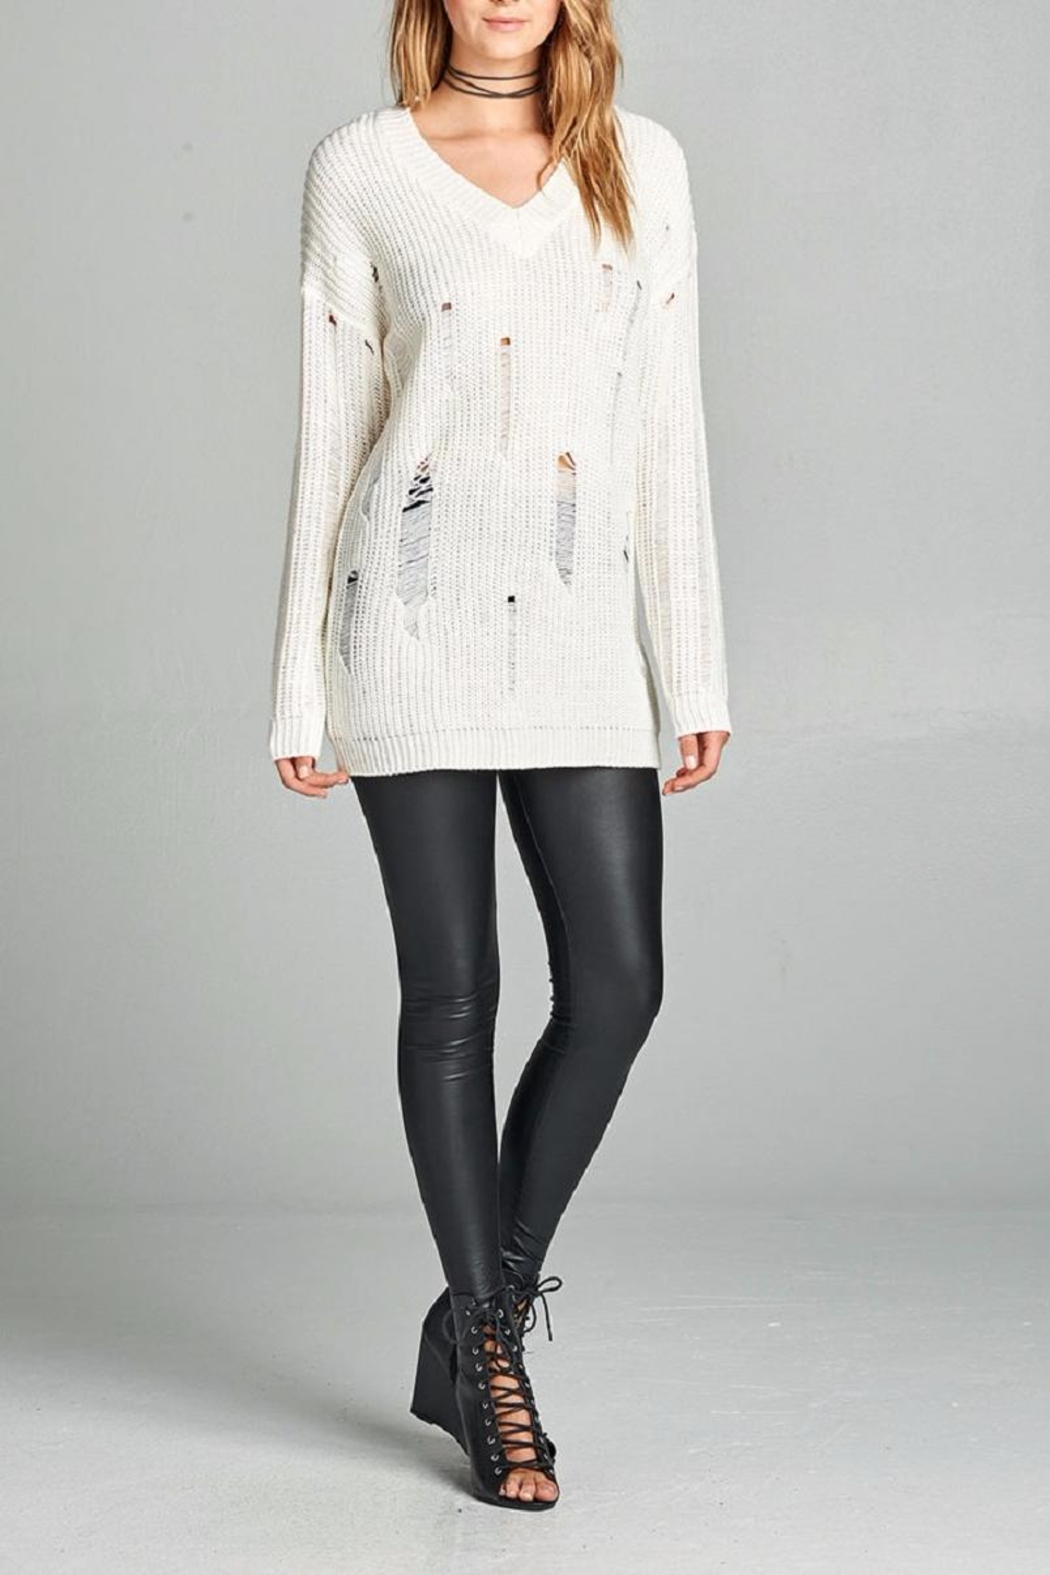 Active Basic Ivory Distressed Sweater - Front Full Image